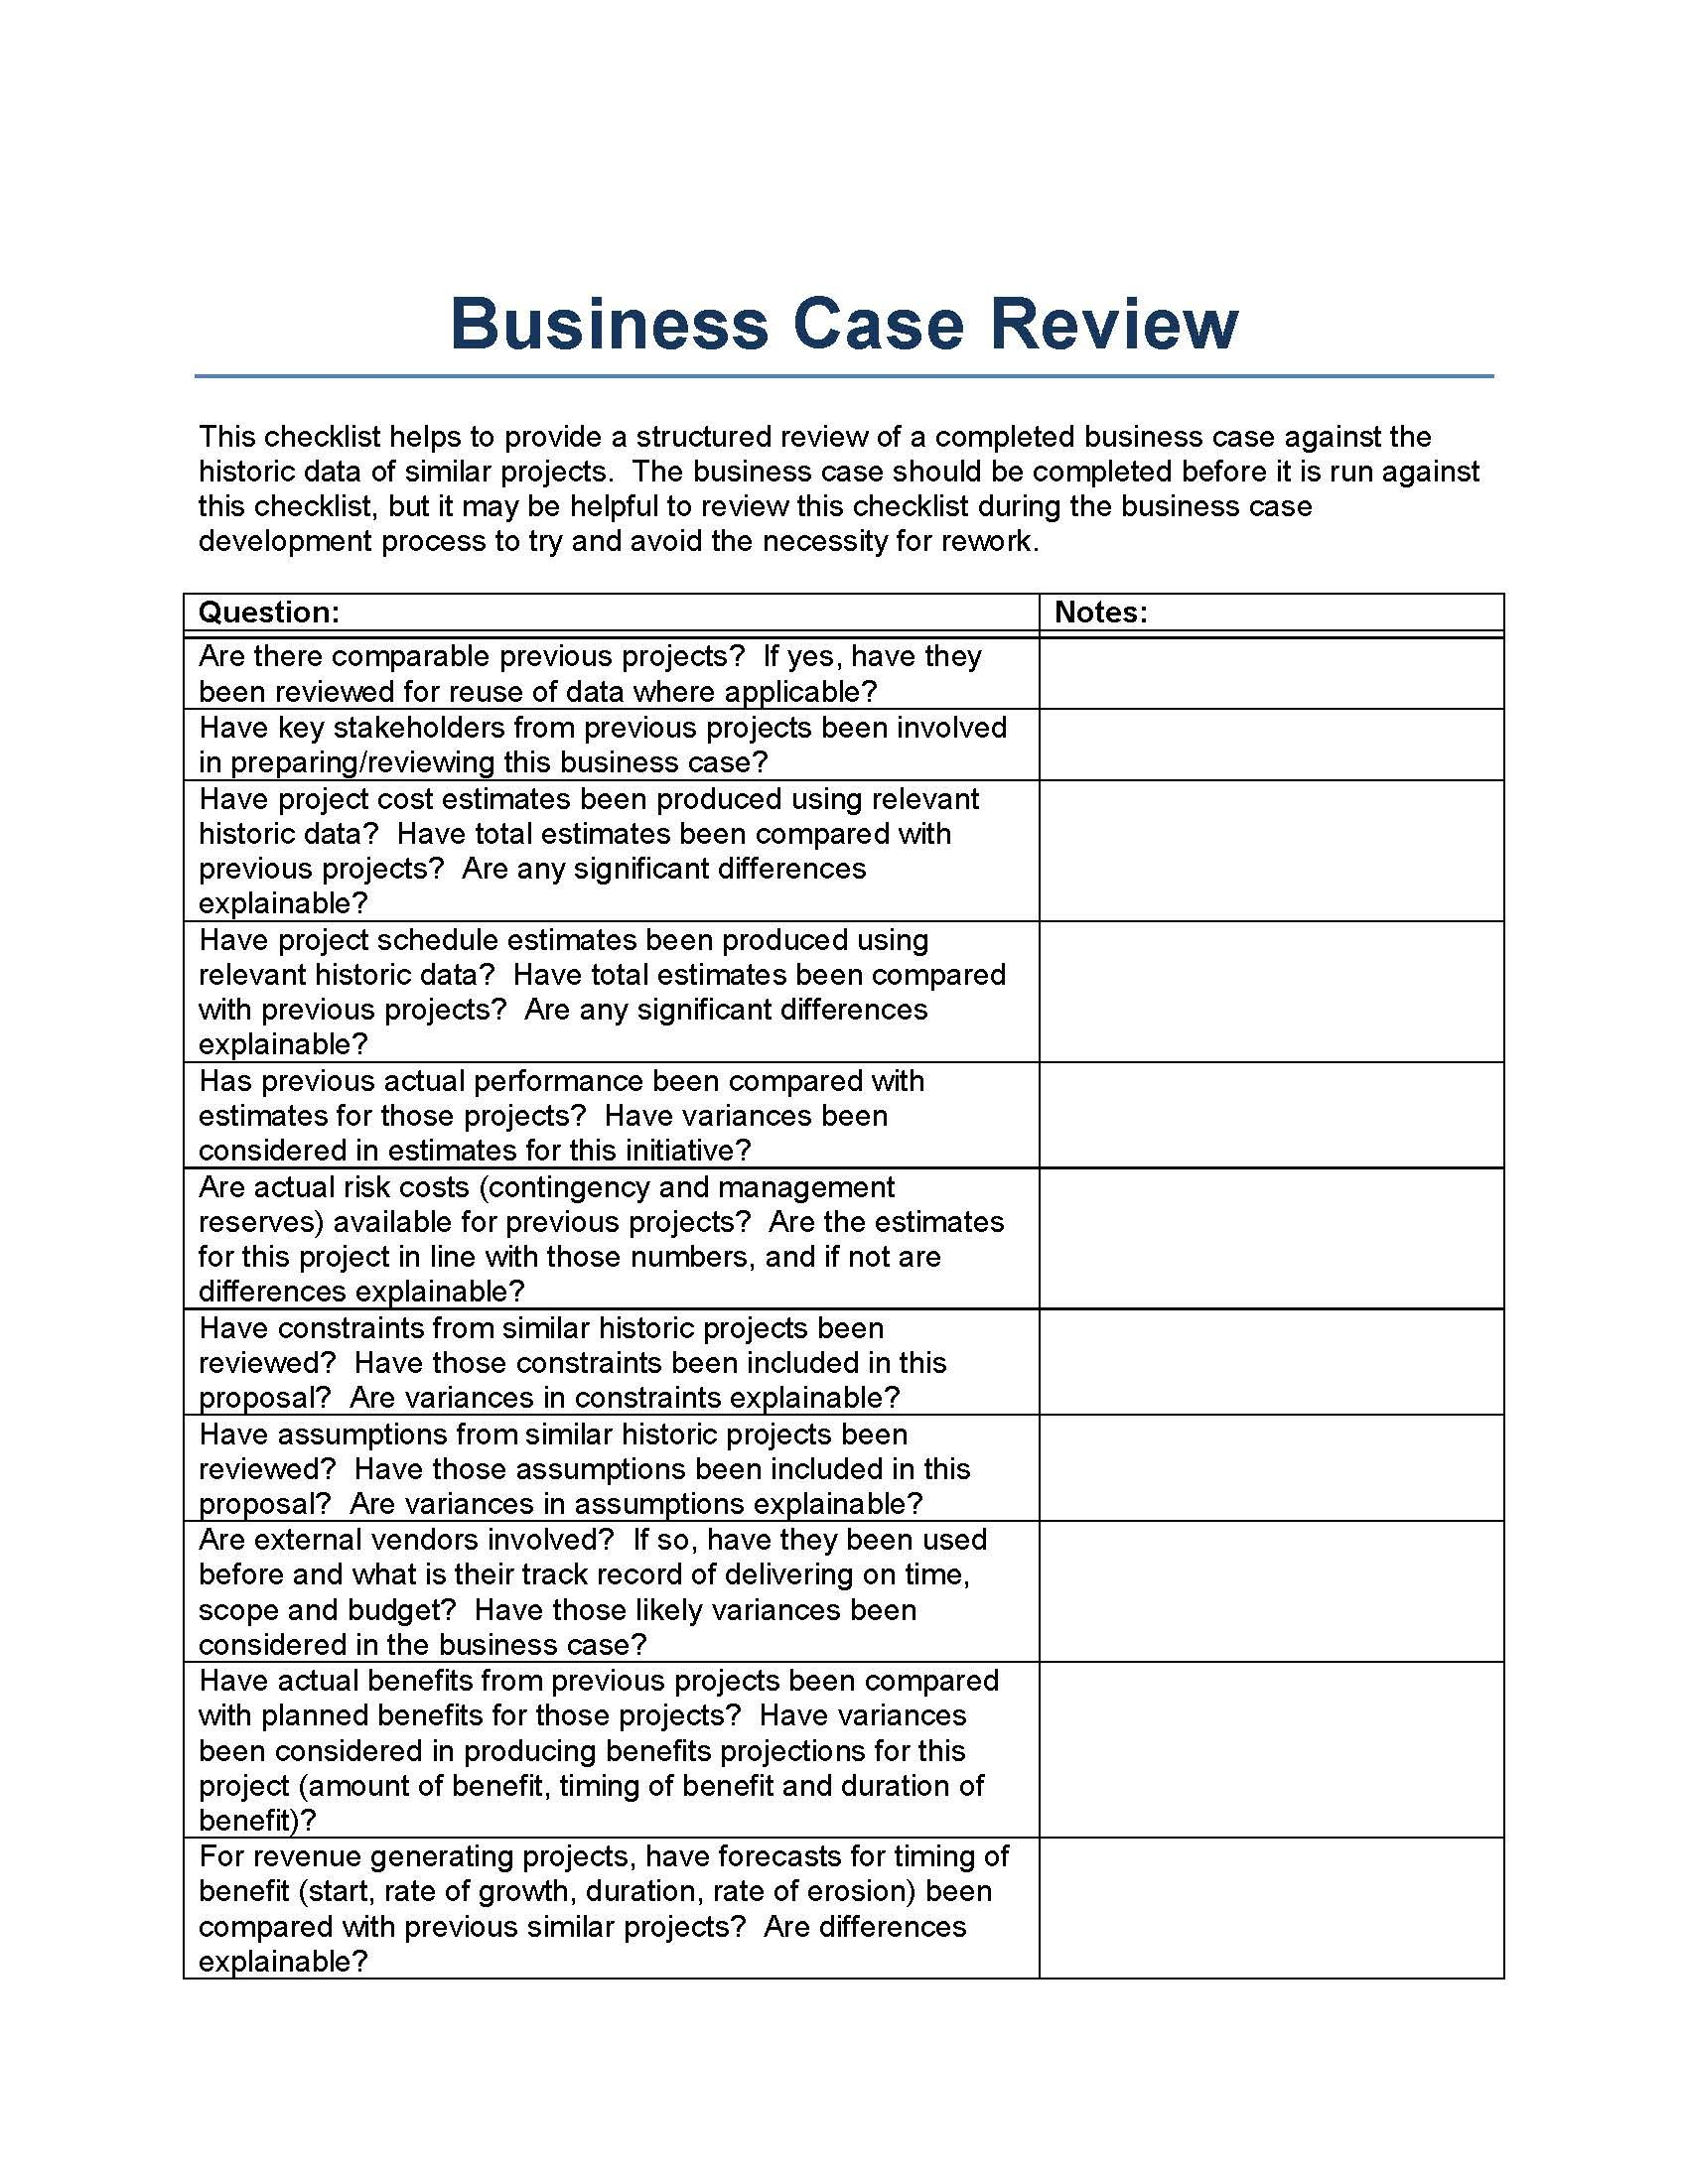 Business case review template from a perspective of historically business case review template from a perspective of historically similar projects cheaphphosting